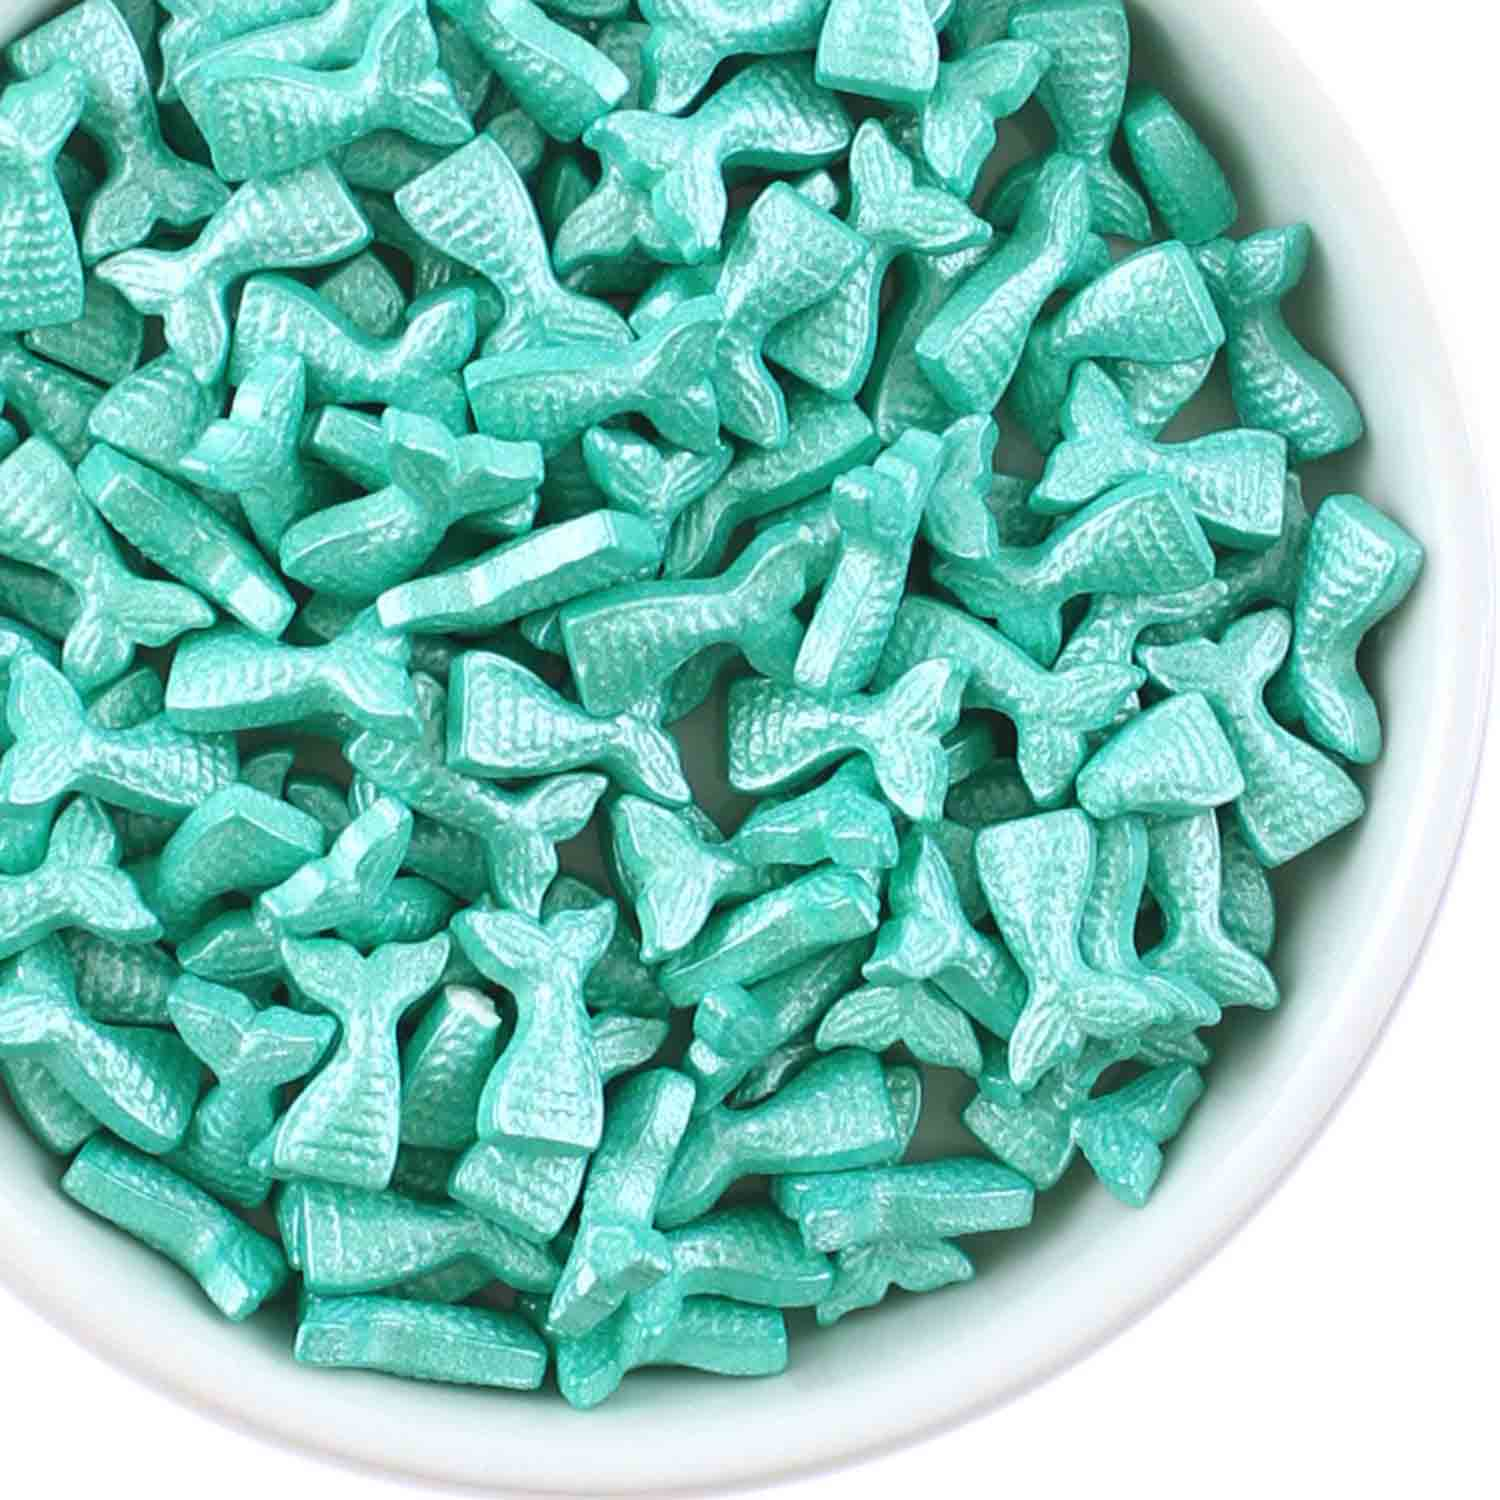 Turquoise Mermaid Tail Candy Sprinkles